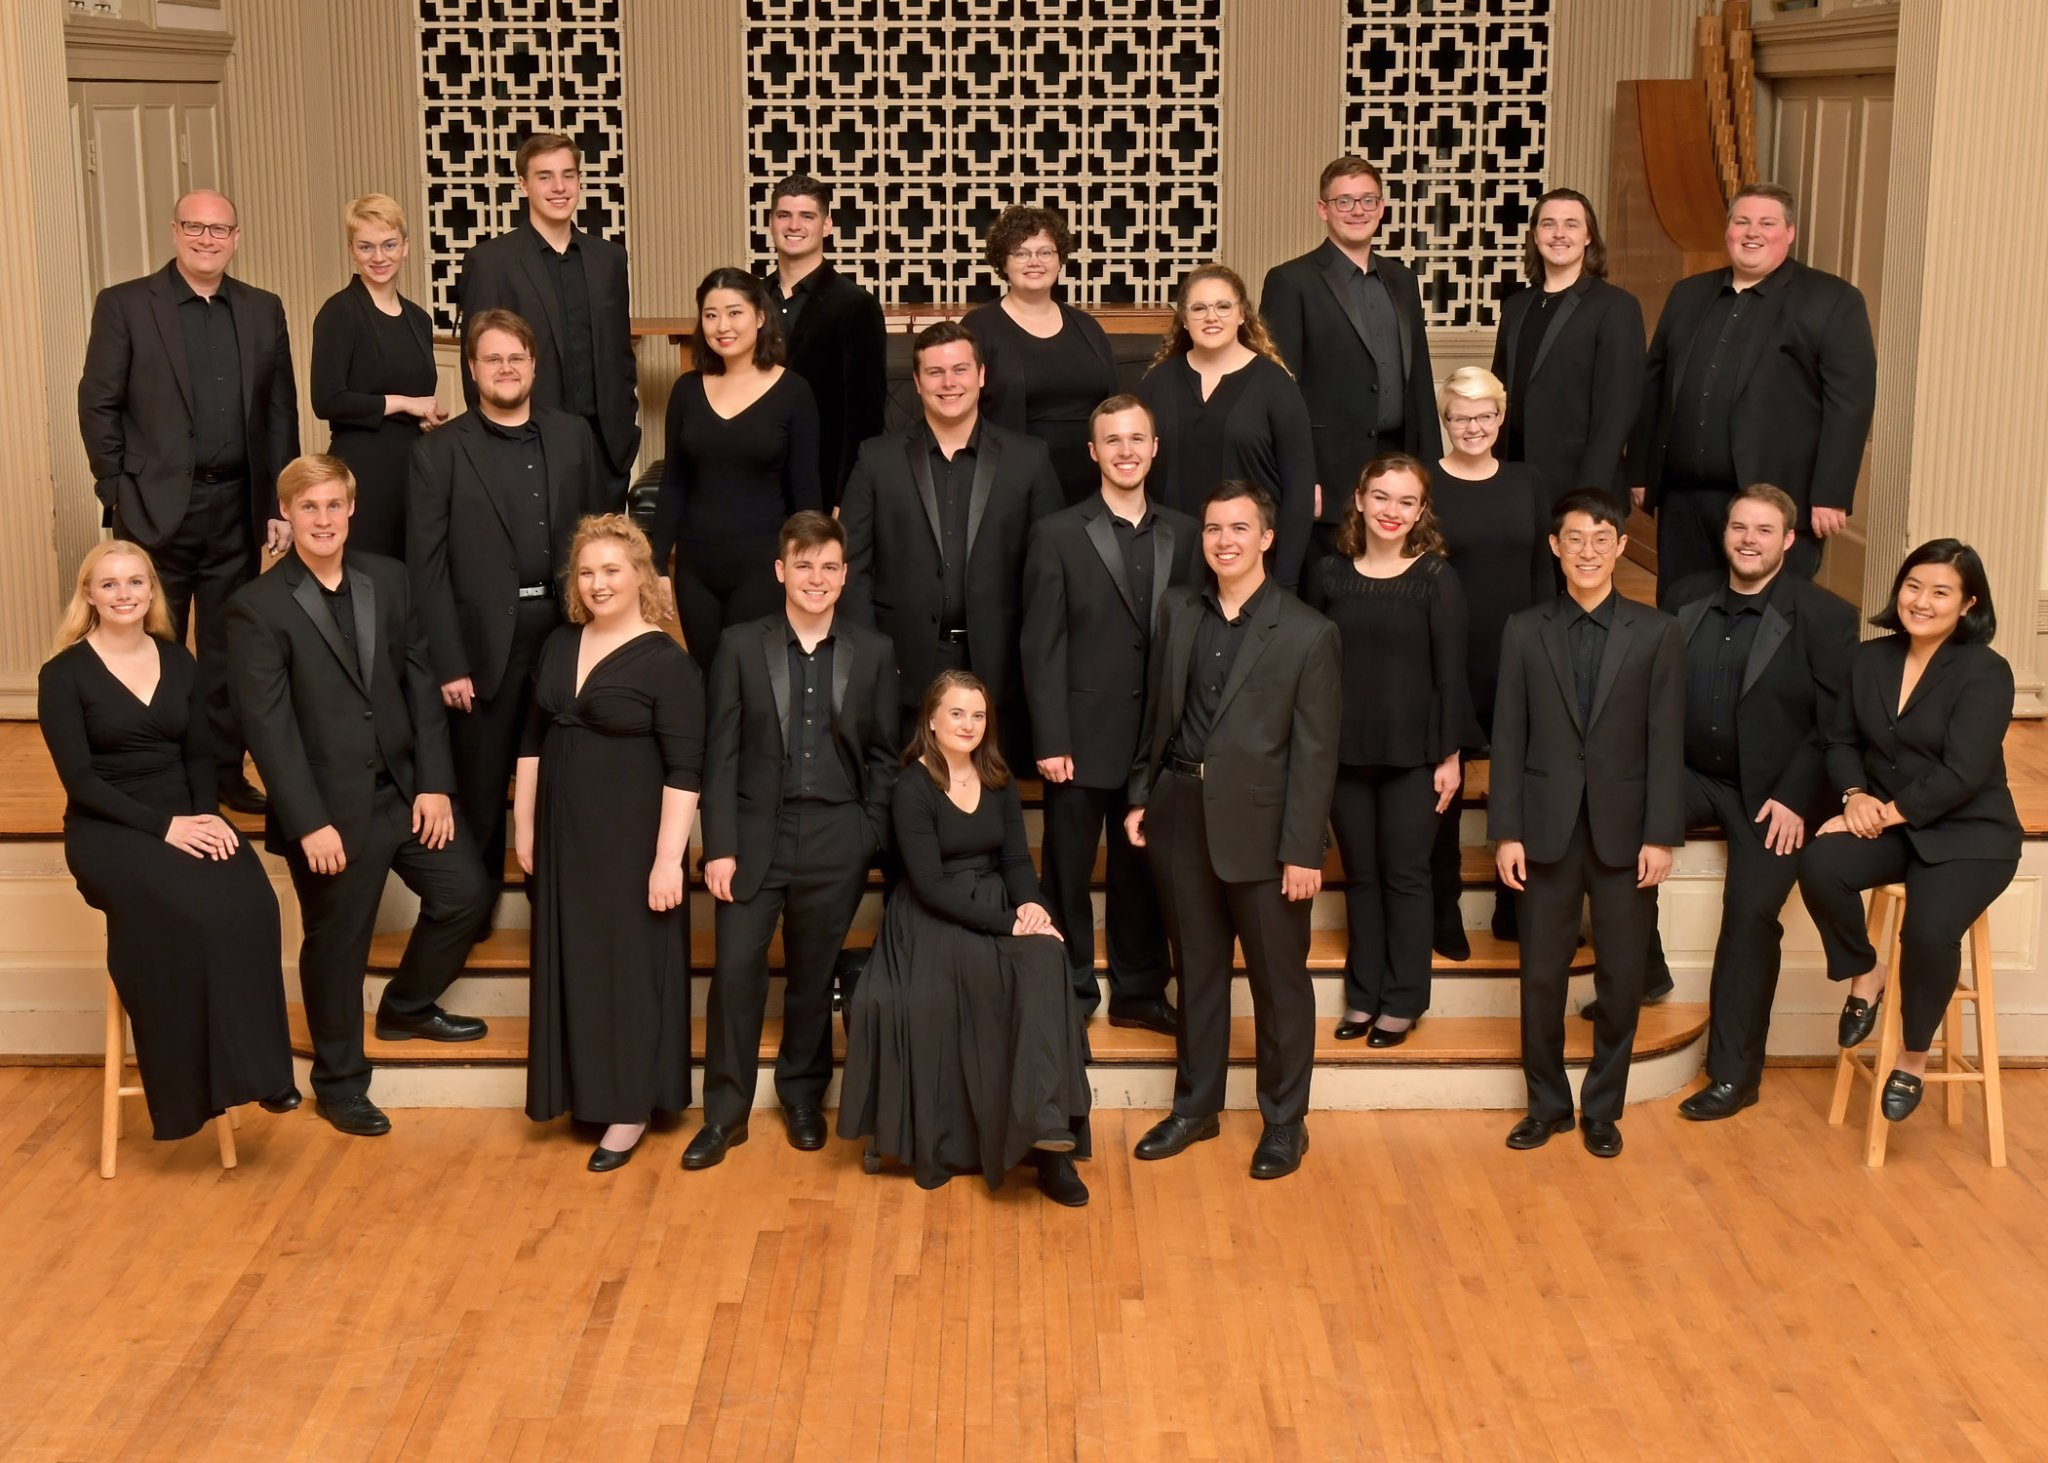 Choral ensemble WESTMINSTER KANTOREI to perform in concert